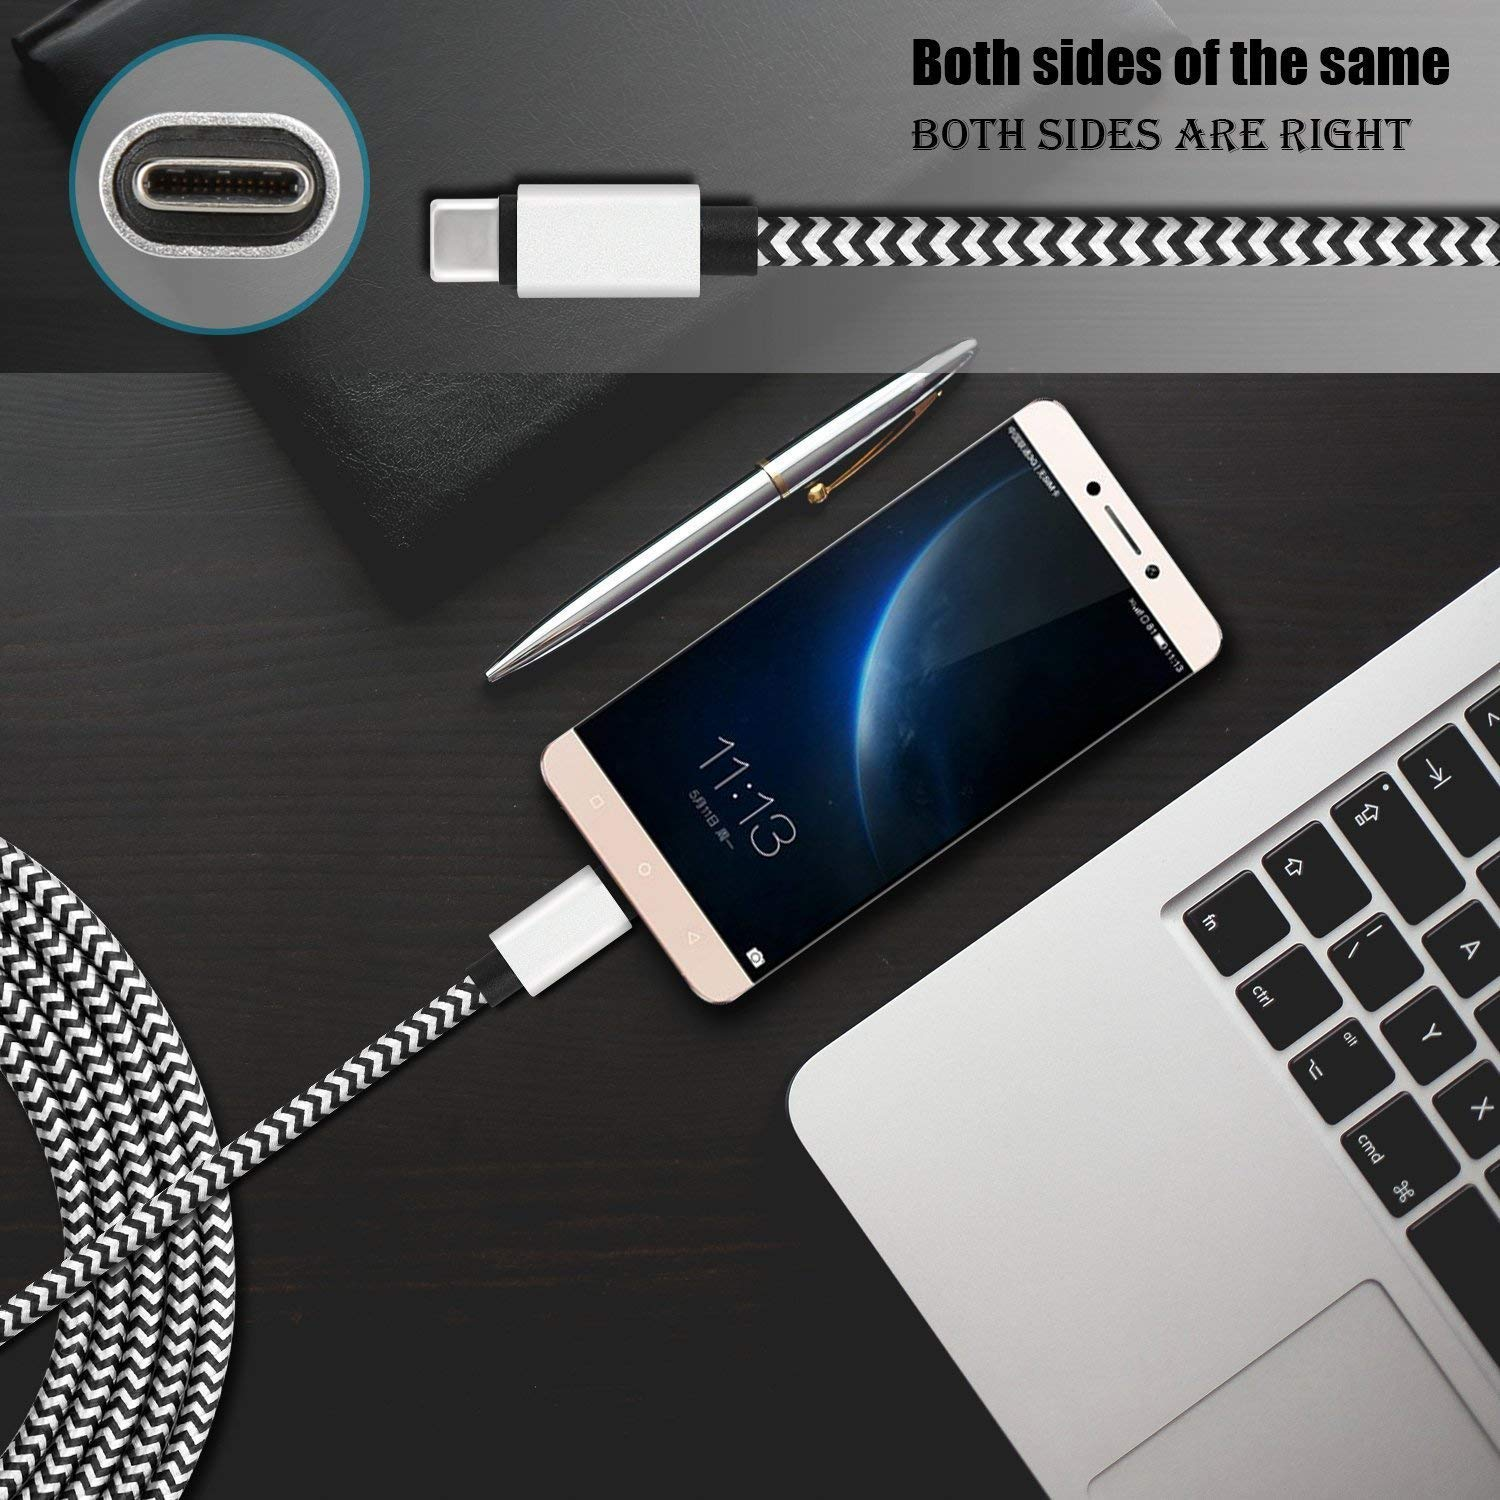 USB C Cable(2Pack,6.6ft)Fast Charging Cord for Samsung Galaxy S10e S10 S9 Plus Note 9 8,LG G8 V50 V40 ThinQ Stylo 4,Moto Z4 Z3 G7,Google Pixel 3 3a XL,OnePlus 7 6T,Kindle Fire HD 10 Tablet